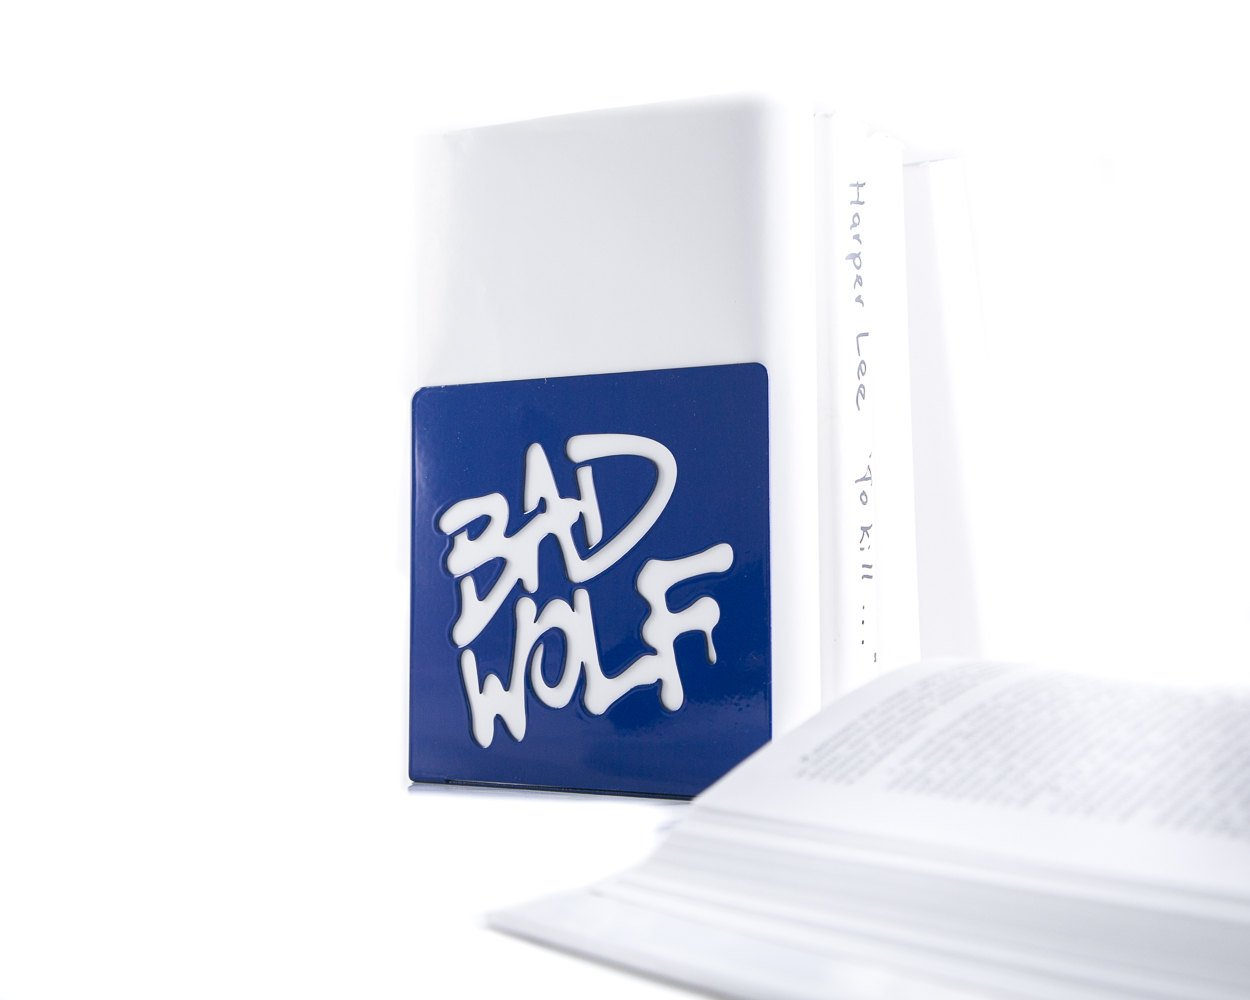 Metal bookends Tardis Police Box Blue Phone Booth with Bad Wolf Graffiti Dr Who inspired - Design Atelier Article